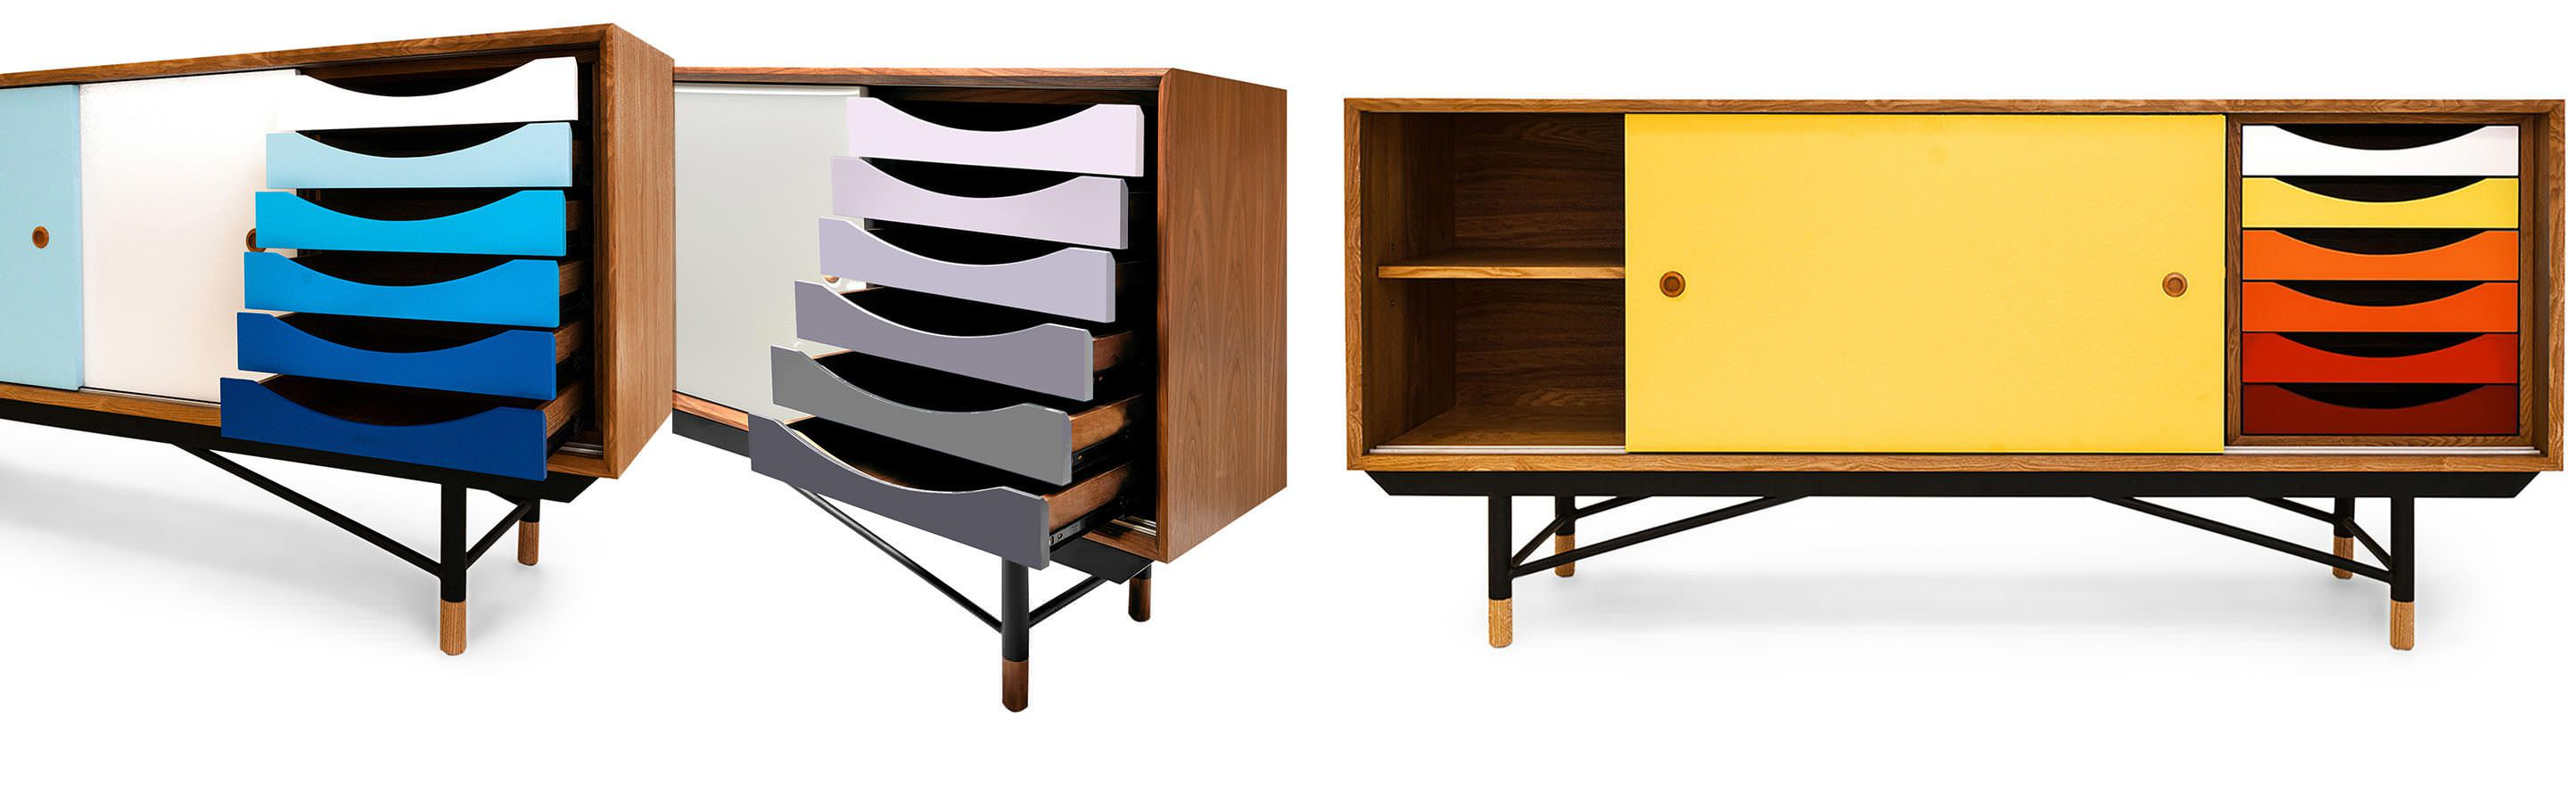 Color Theory Mid Century Modern Sideboard width=